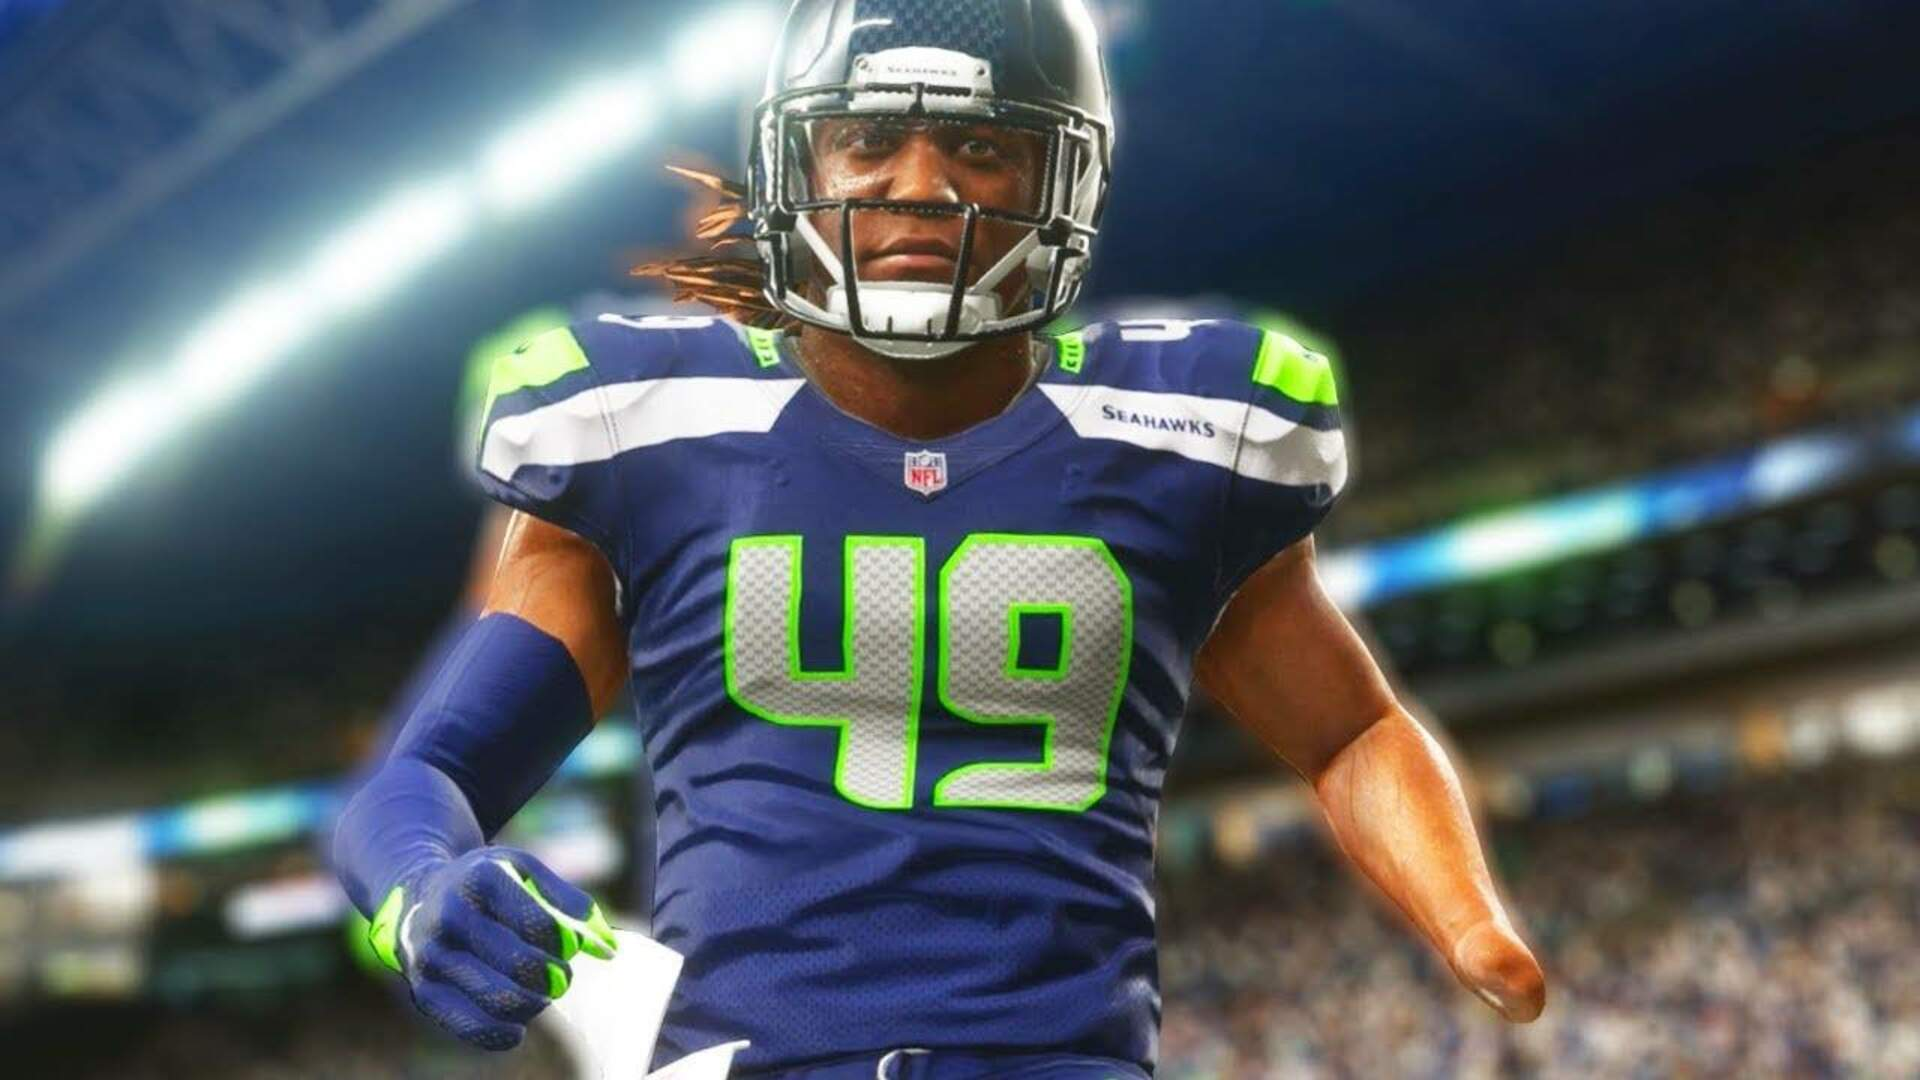 EA Delays Madden 21 Reveal in Light of Protests Against Police Brutality